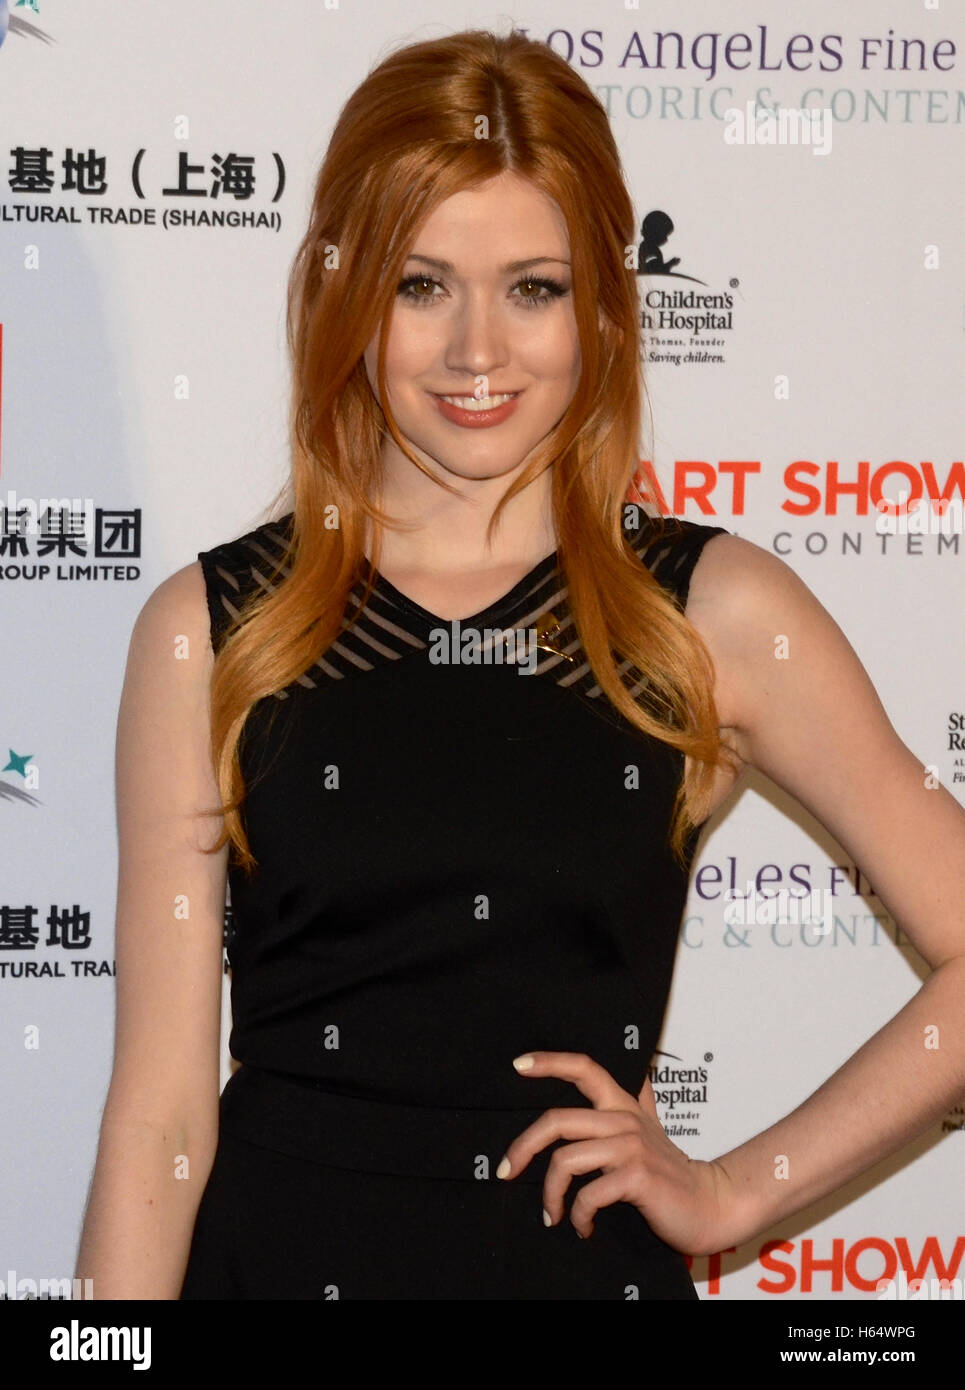 Katherine McNamara attends the LA Art Show 2016 at the LA Convention Center on January 27, 2016 - Stock Image